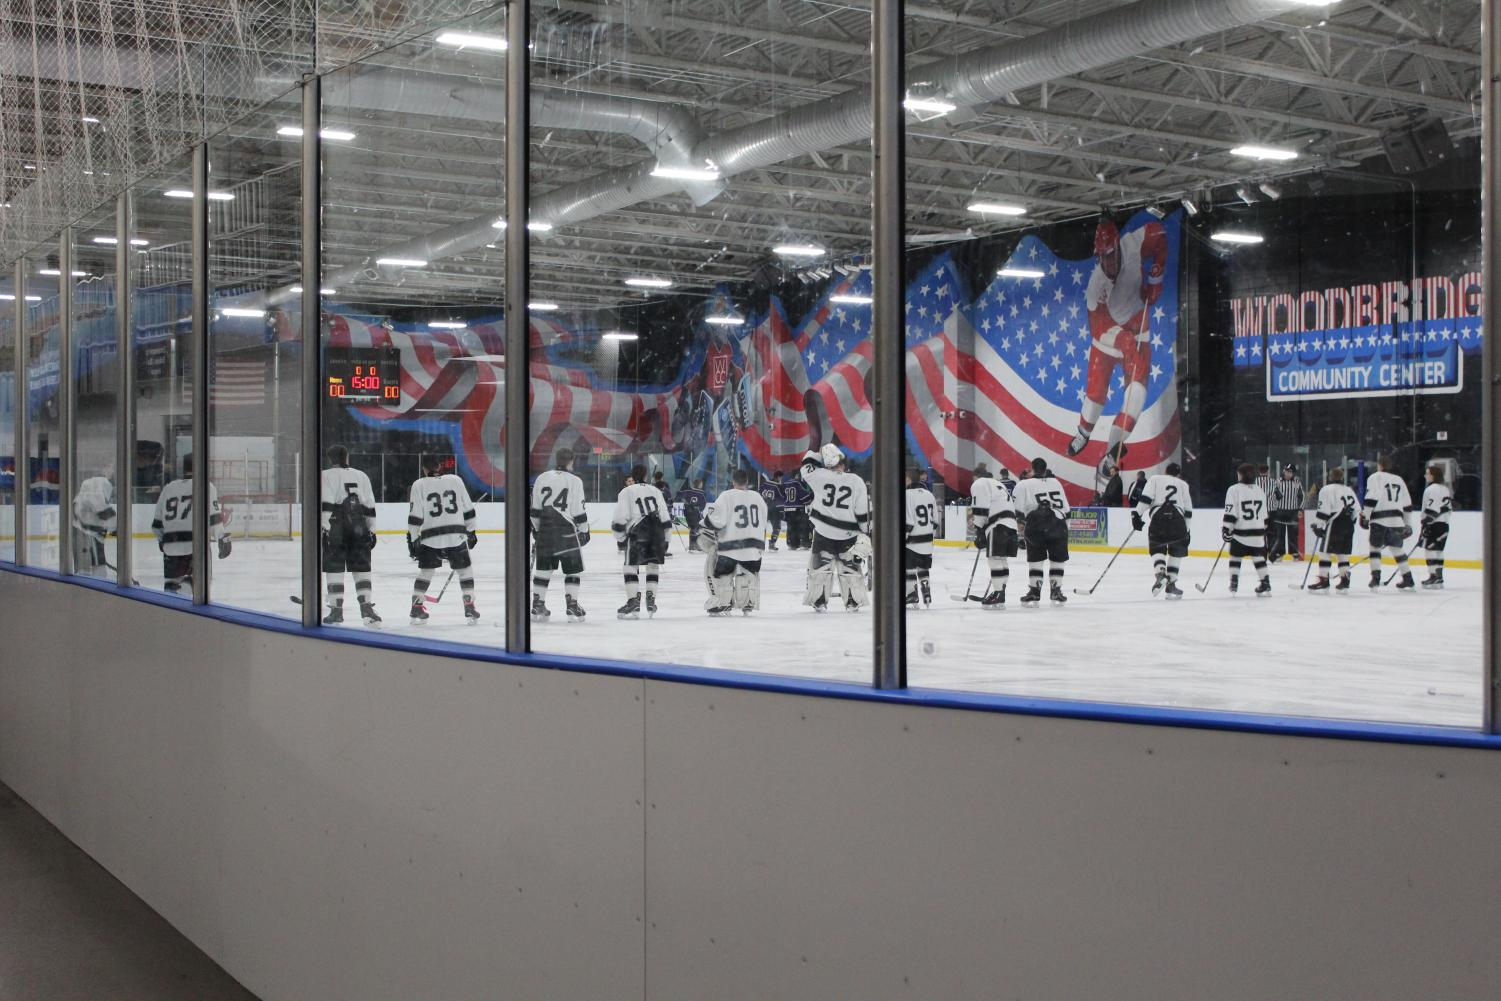 The hockey team lines up before their game starts, to listen to the National Anthem.